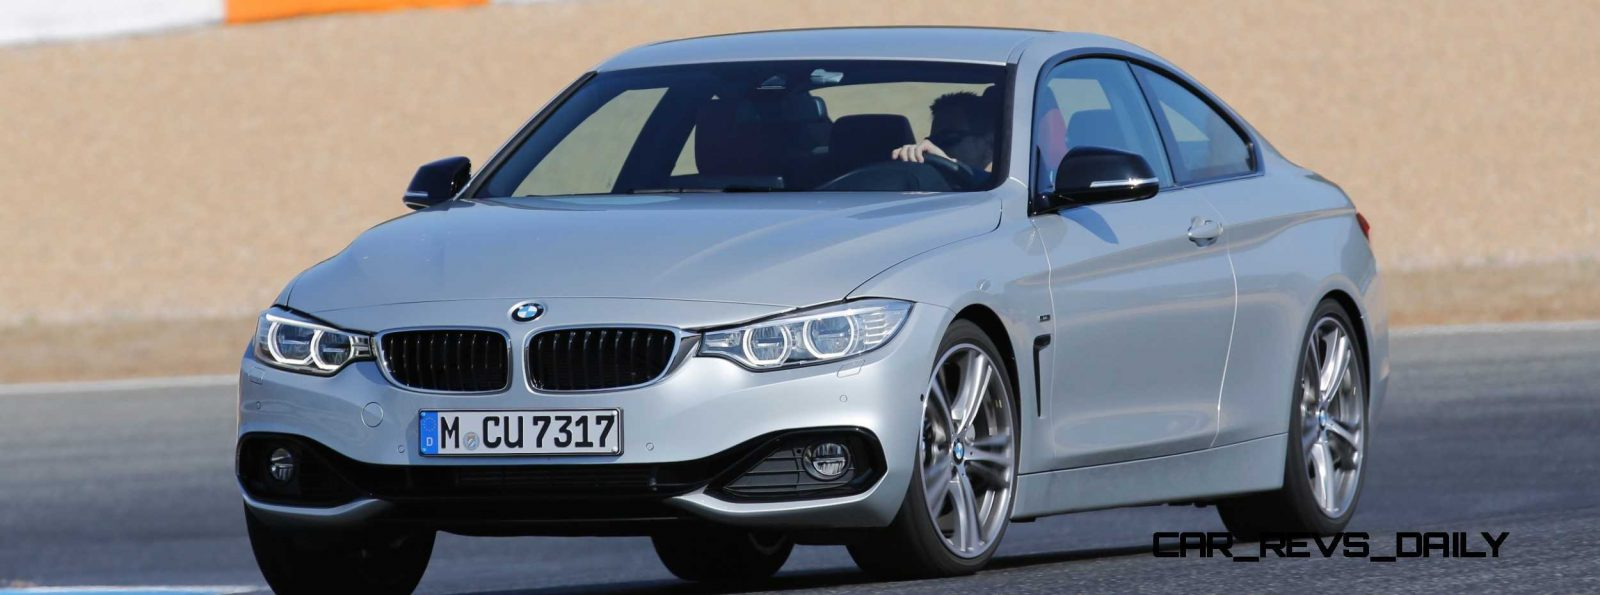 Latest BMW 435i Track Photos Show Beautiful Proportions 16